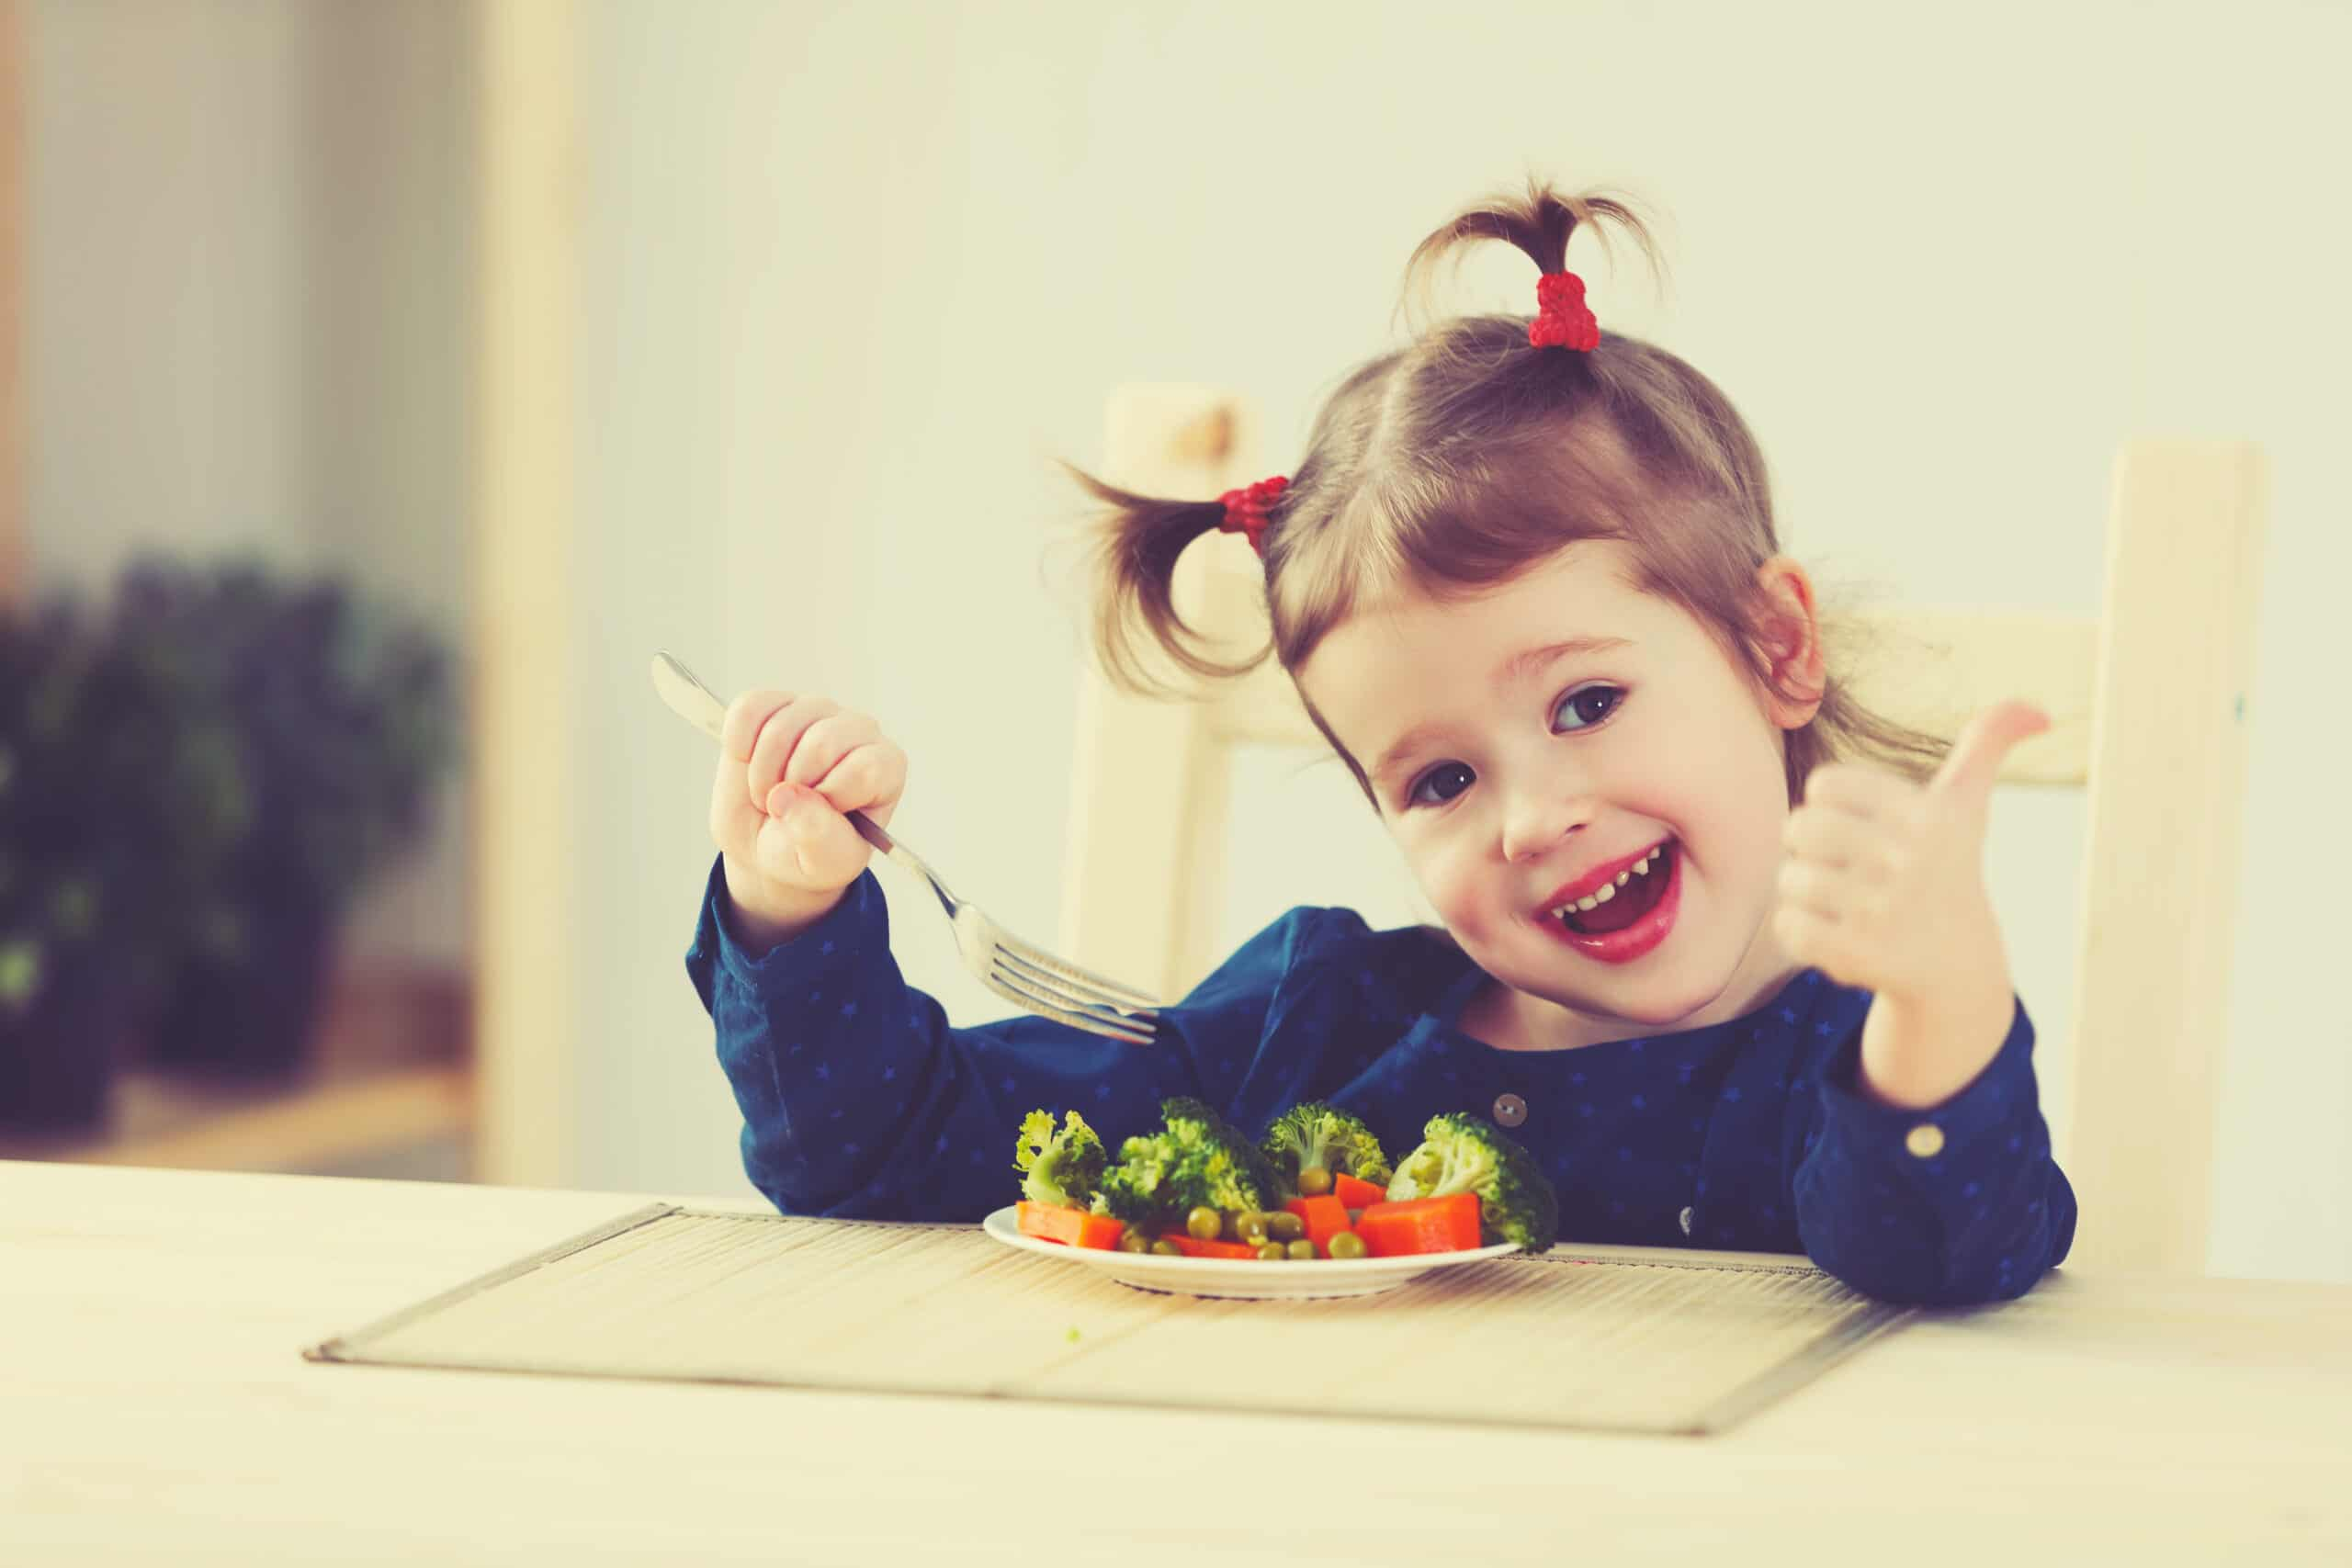 How Quot Project Yummy Veggies Quot Got My Kids Into Healthy Food